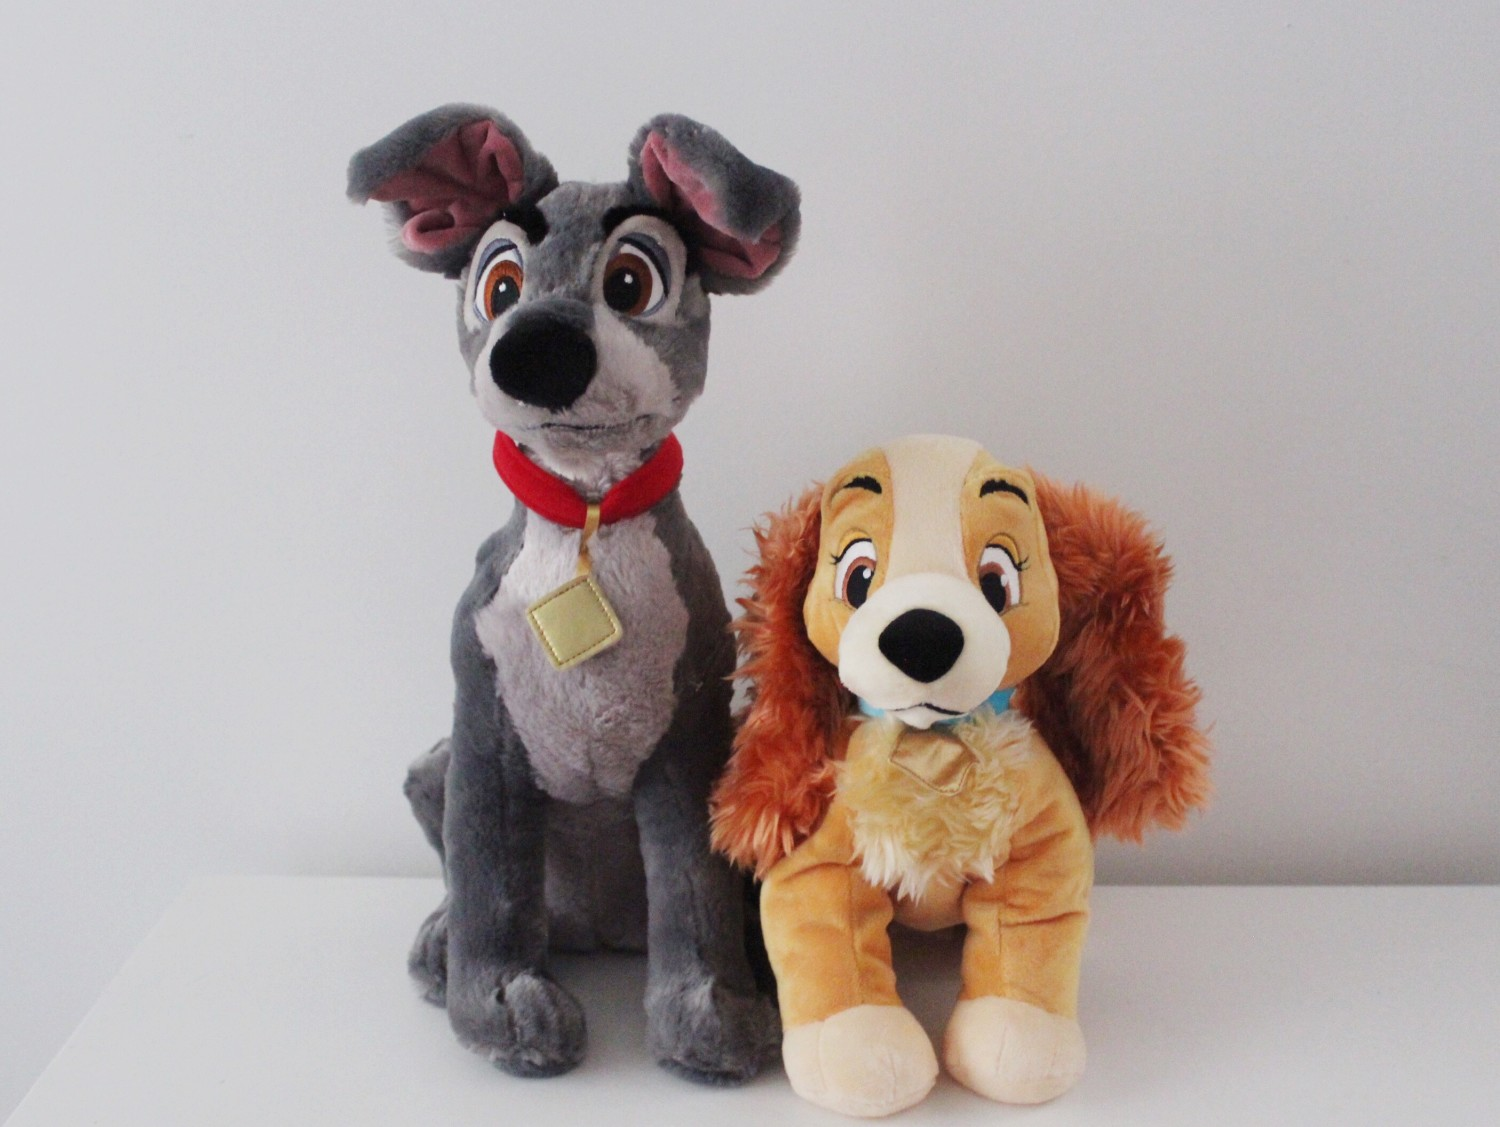 Lady and the Tramp Plush